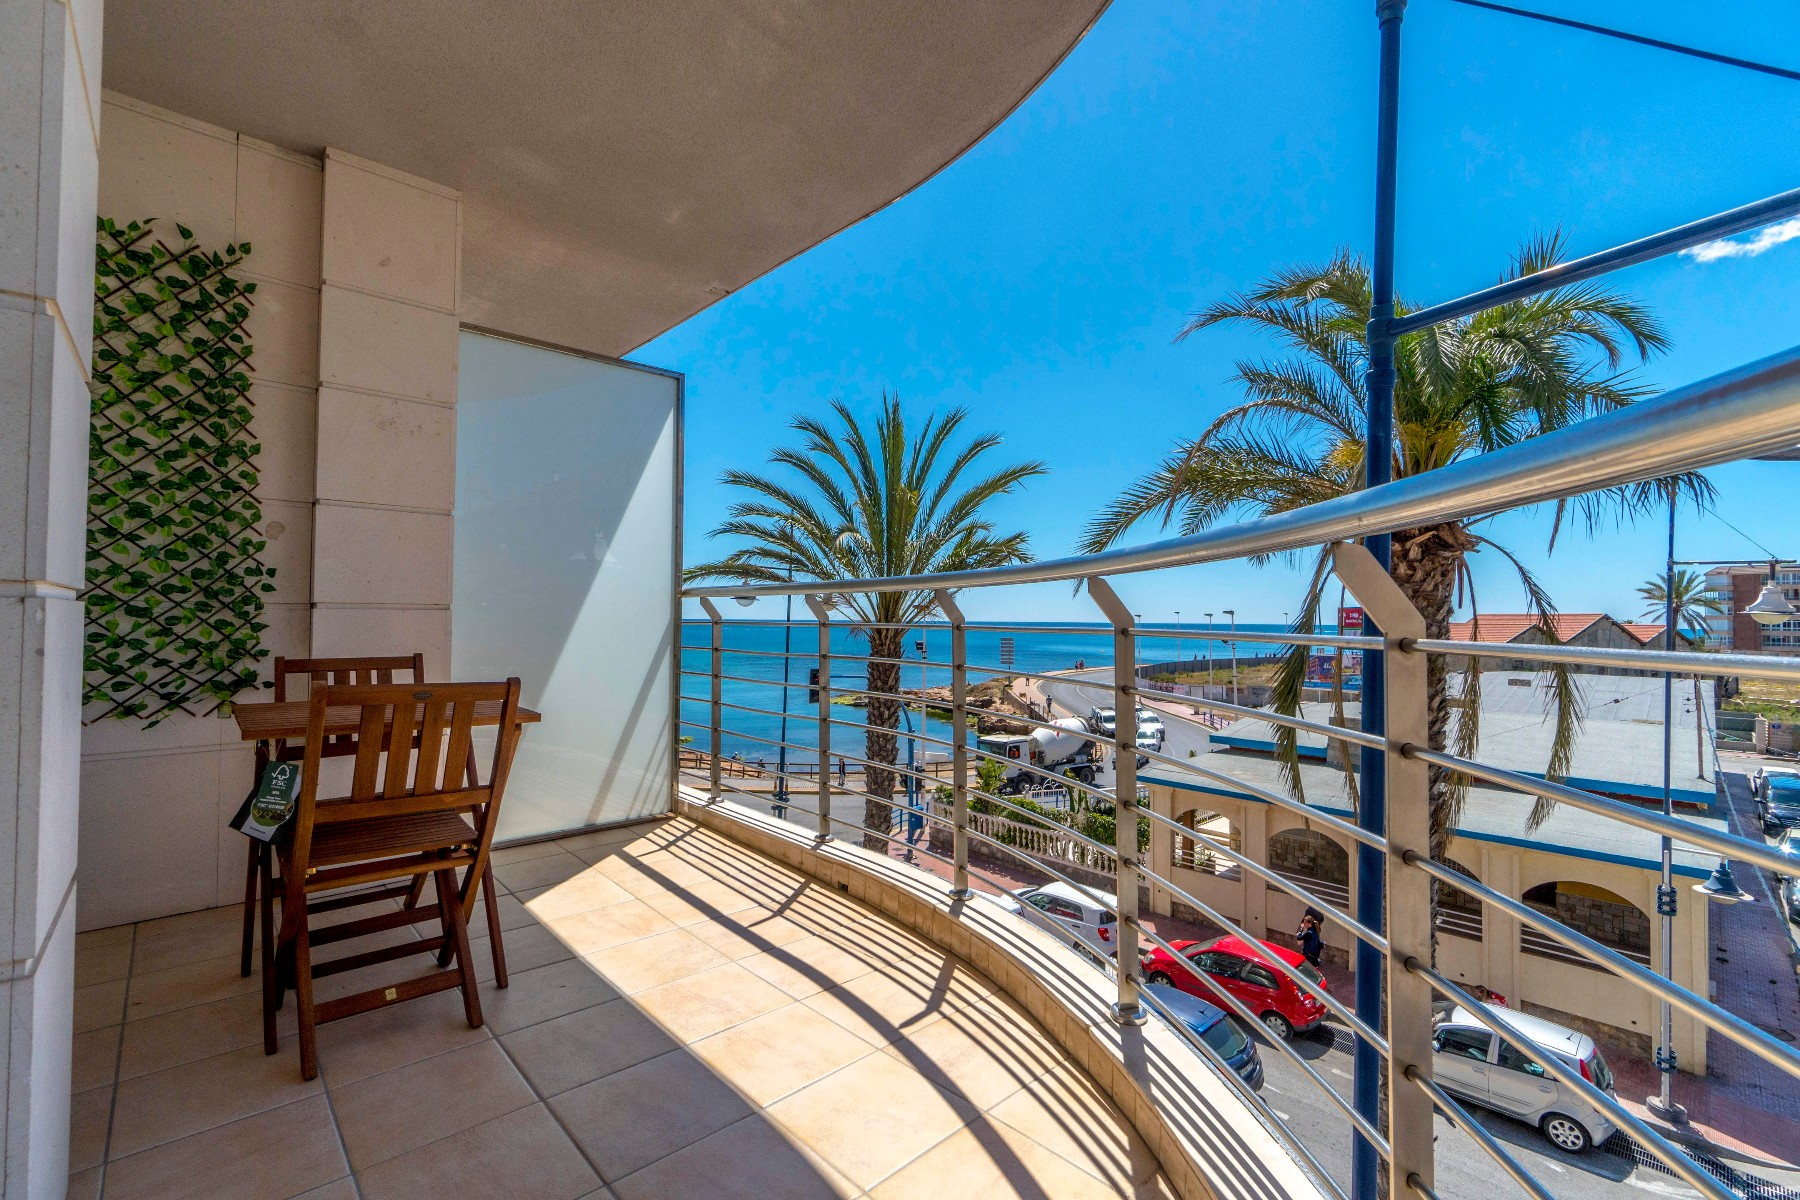 o 1cctdskid1a1h1ip82ktdrflvh2l - Navy style and sea views in Torrevieja (Alicante)